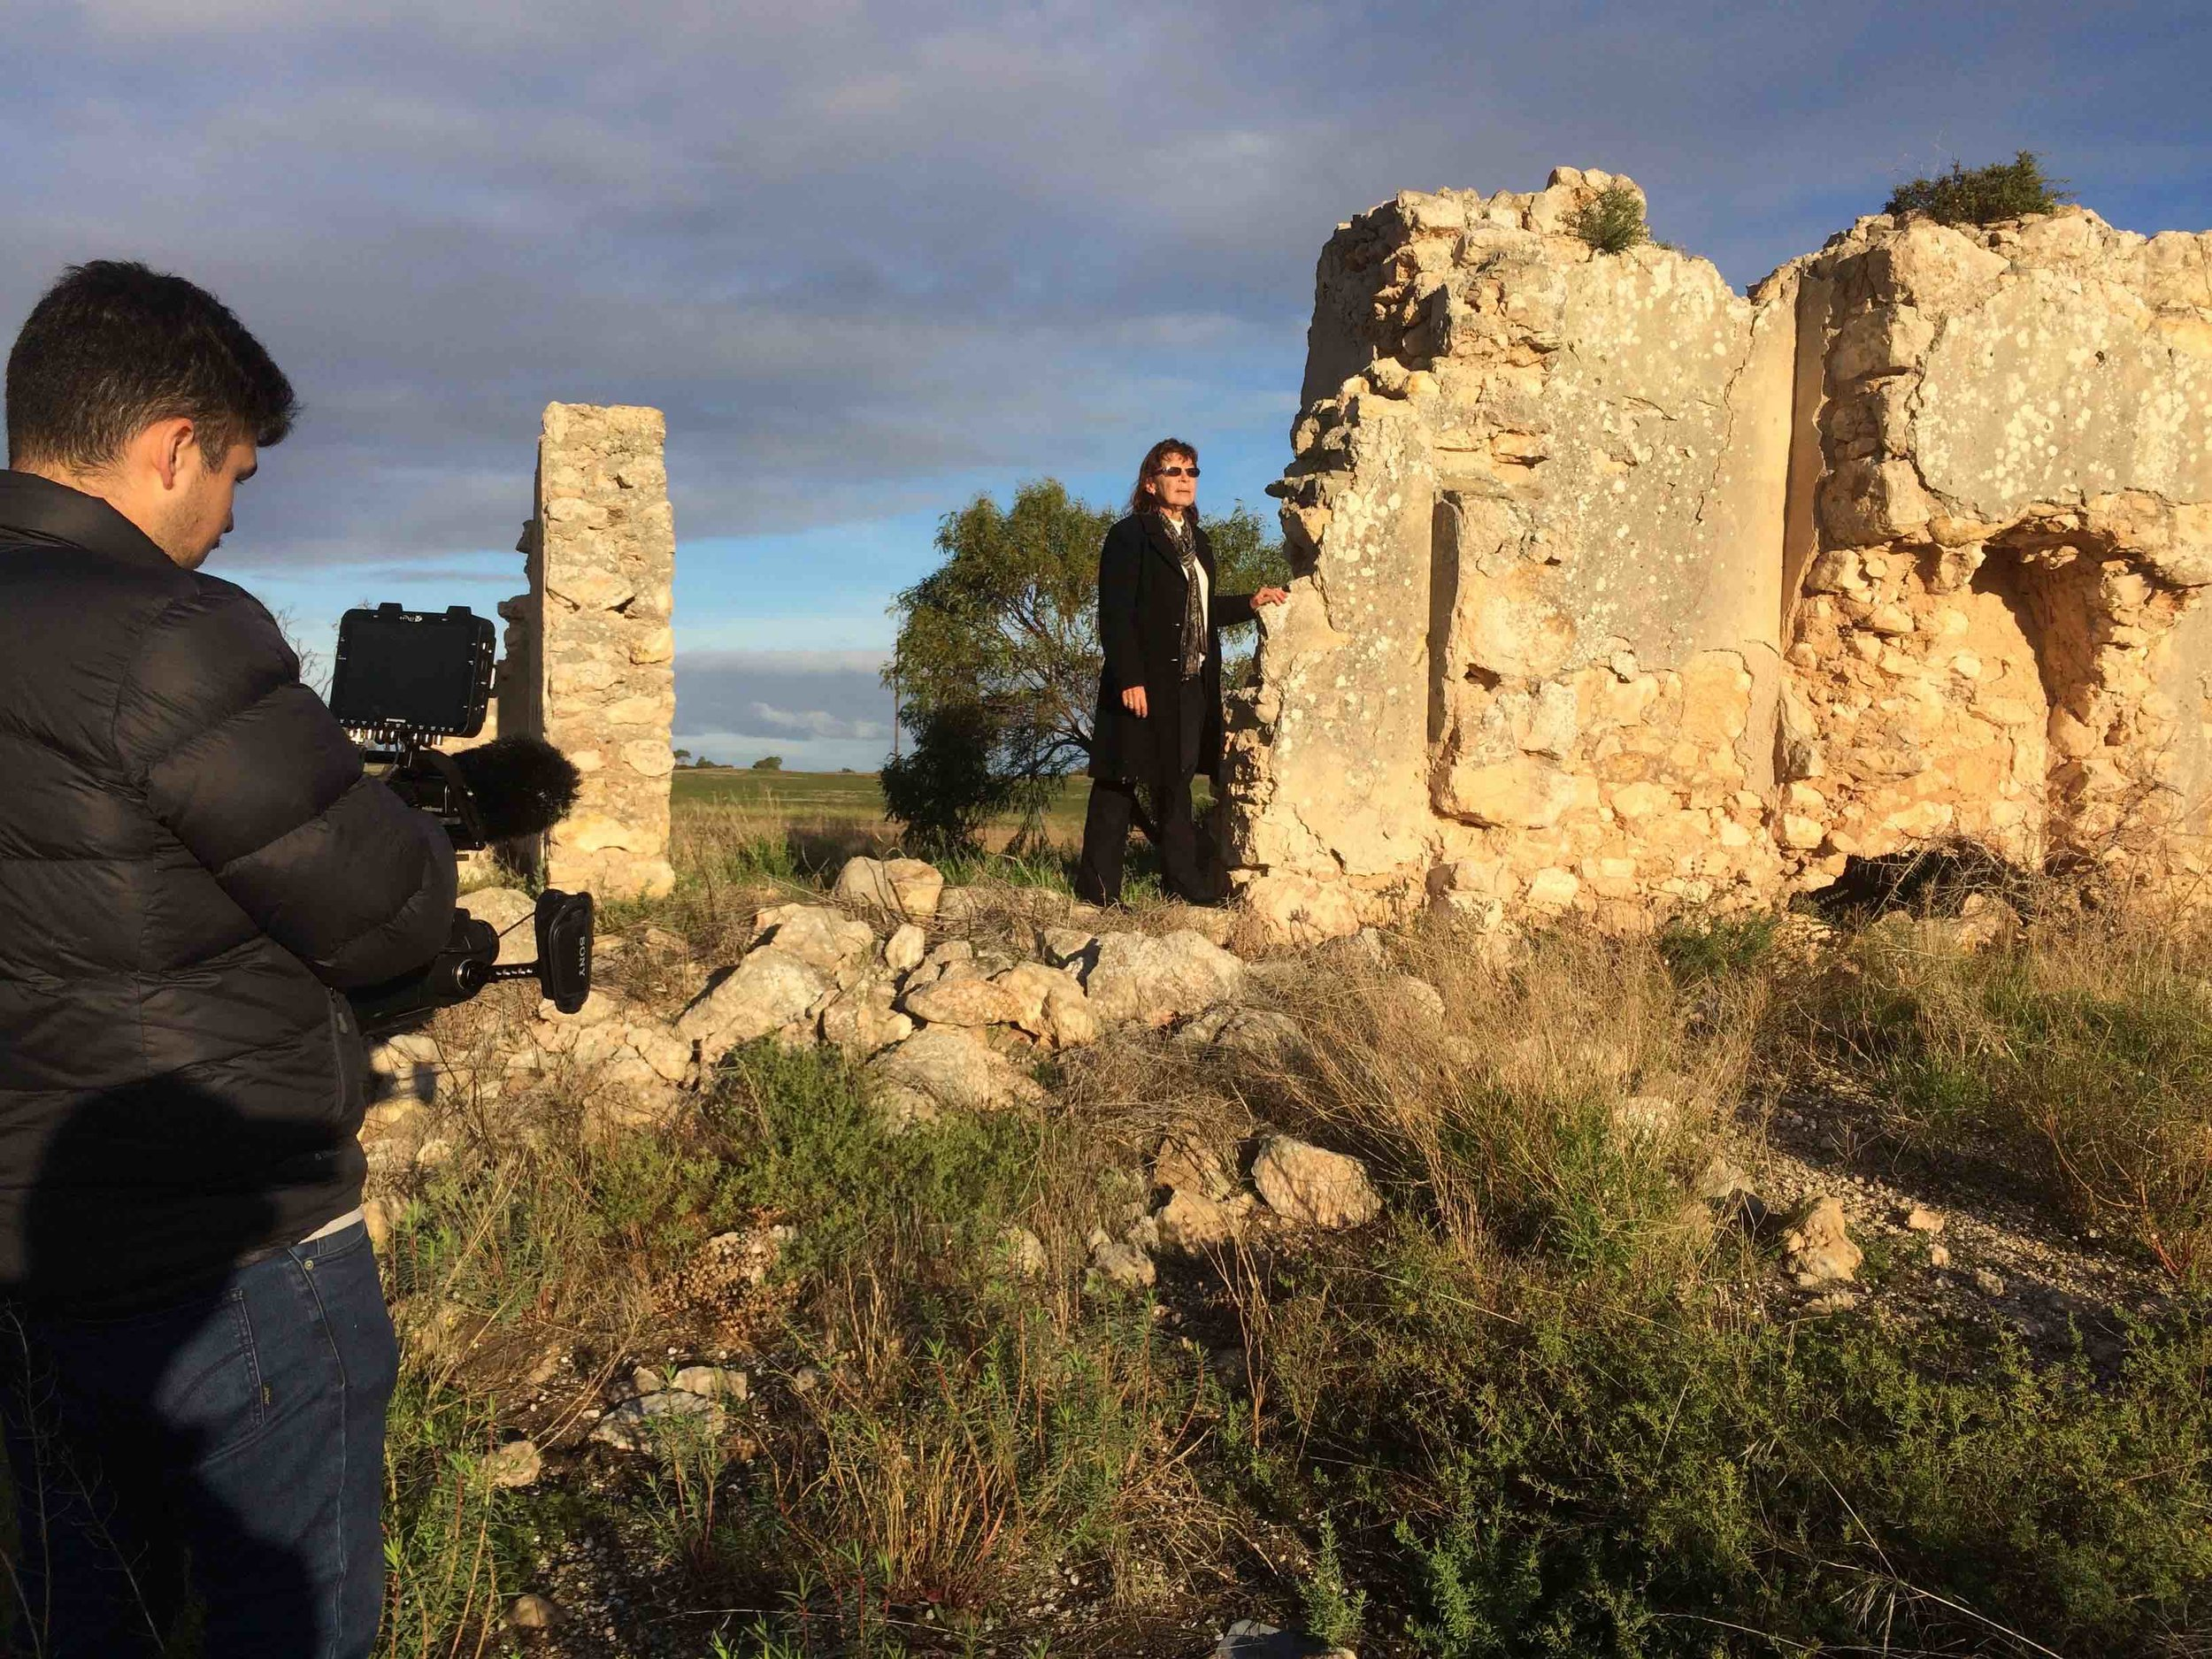 Lyn Lovegrove Niemz at the Murrungung ruins. Photo Carl Kuddell April 2017